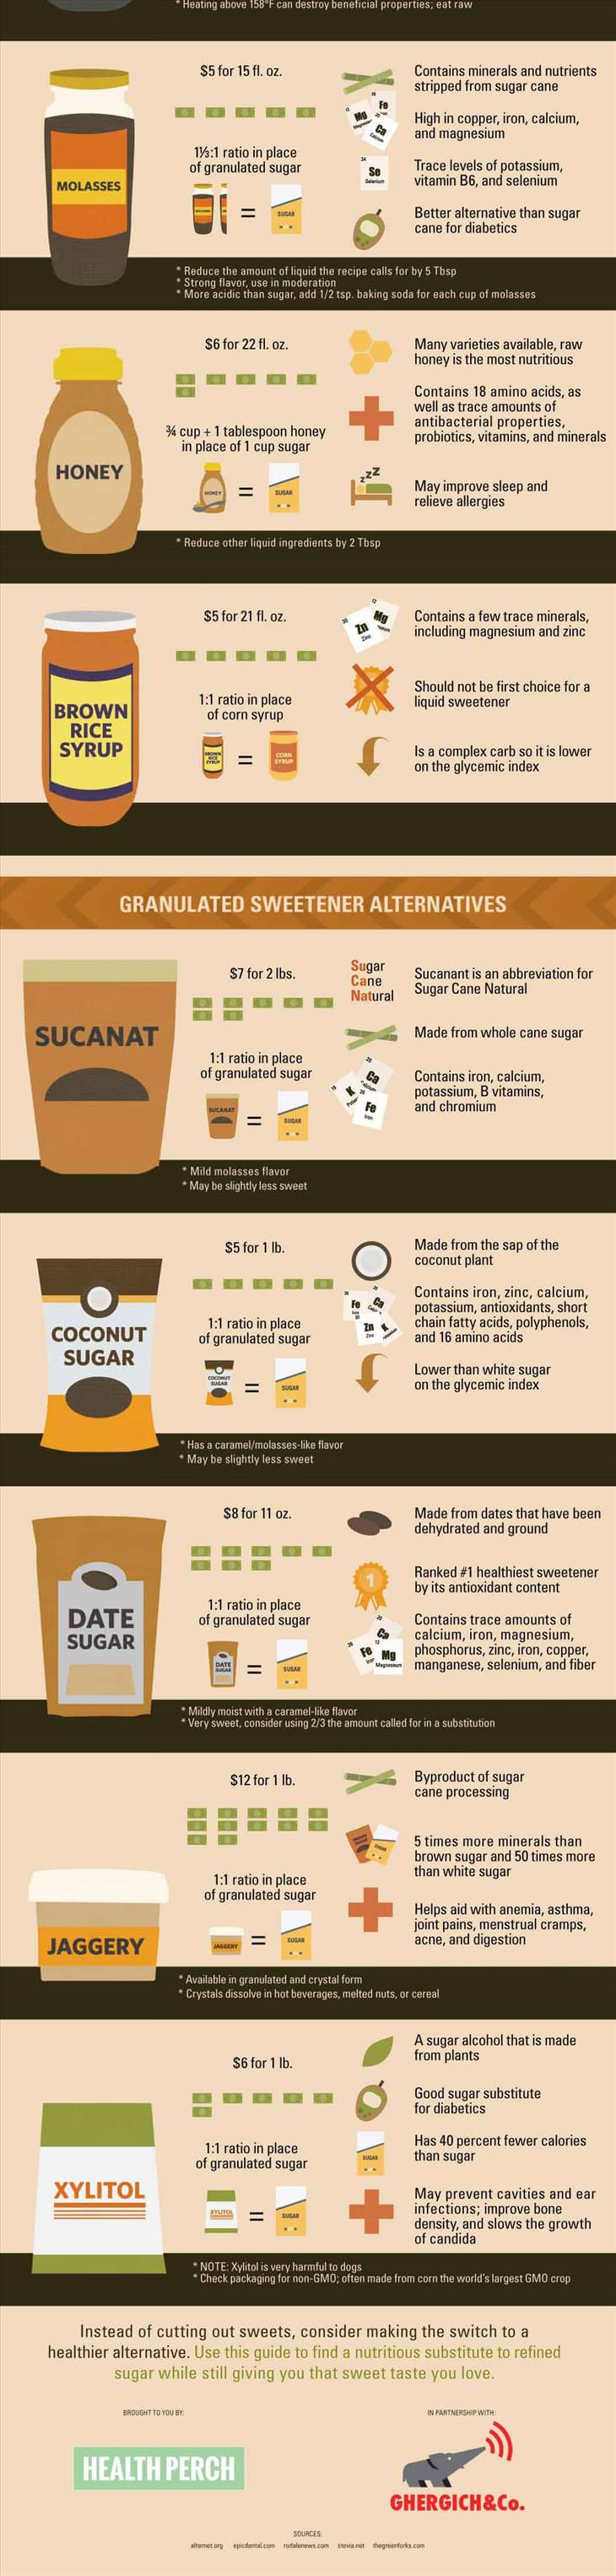 How much sugar is ok to eat